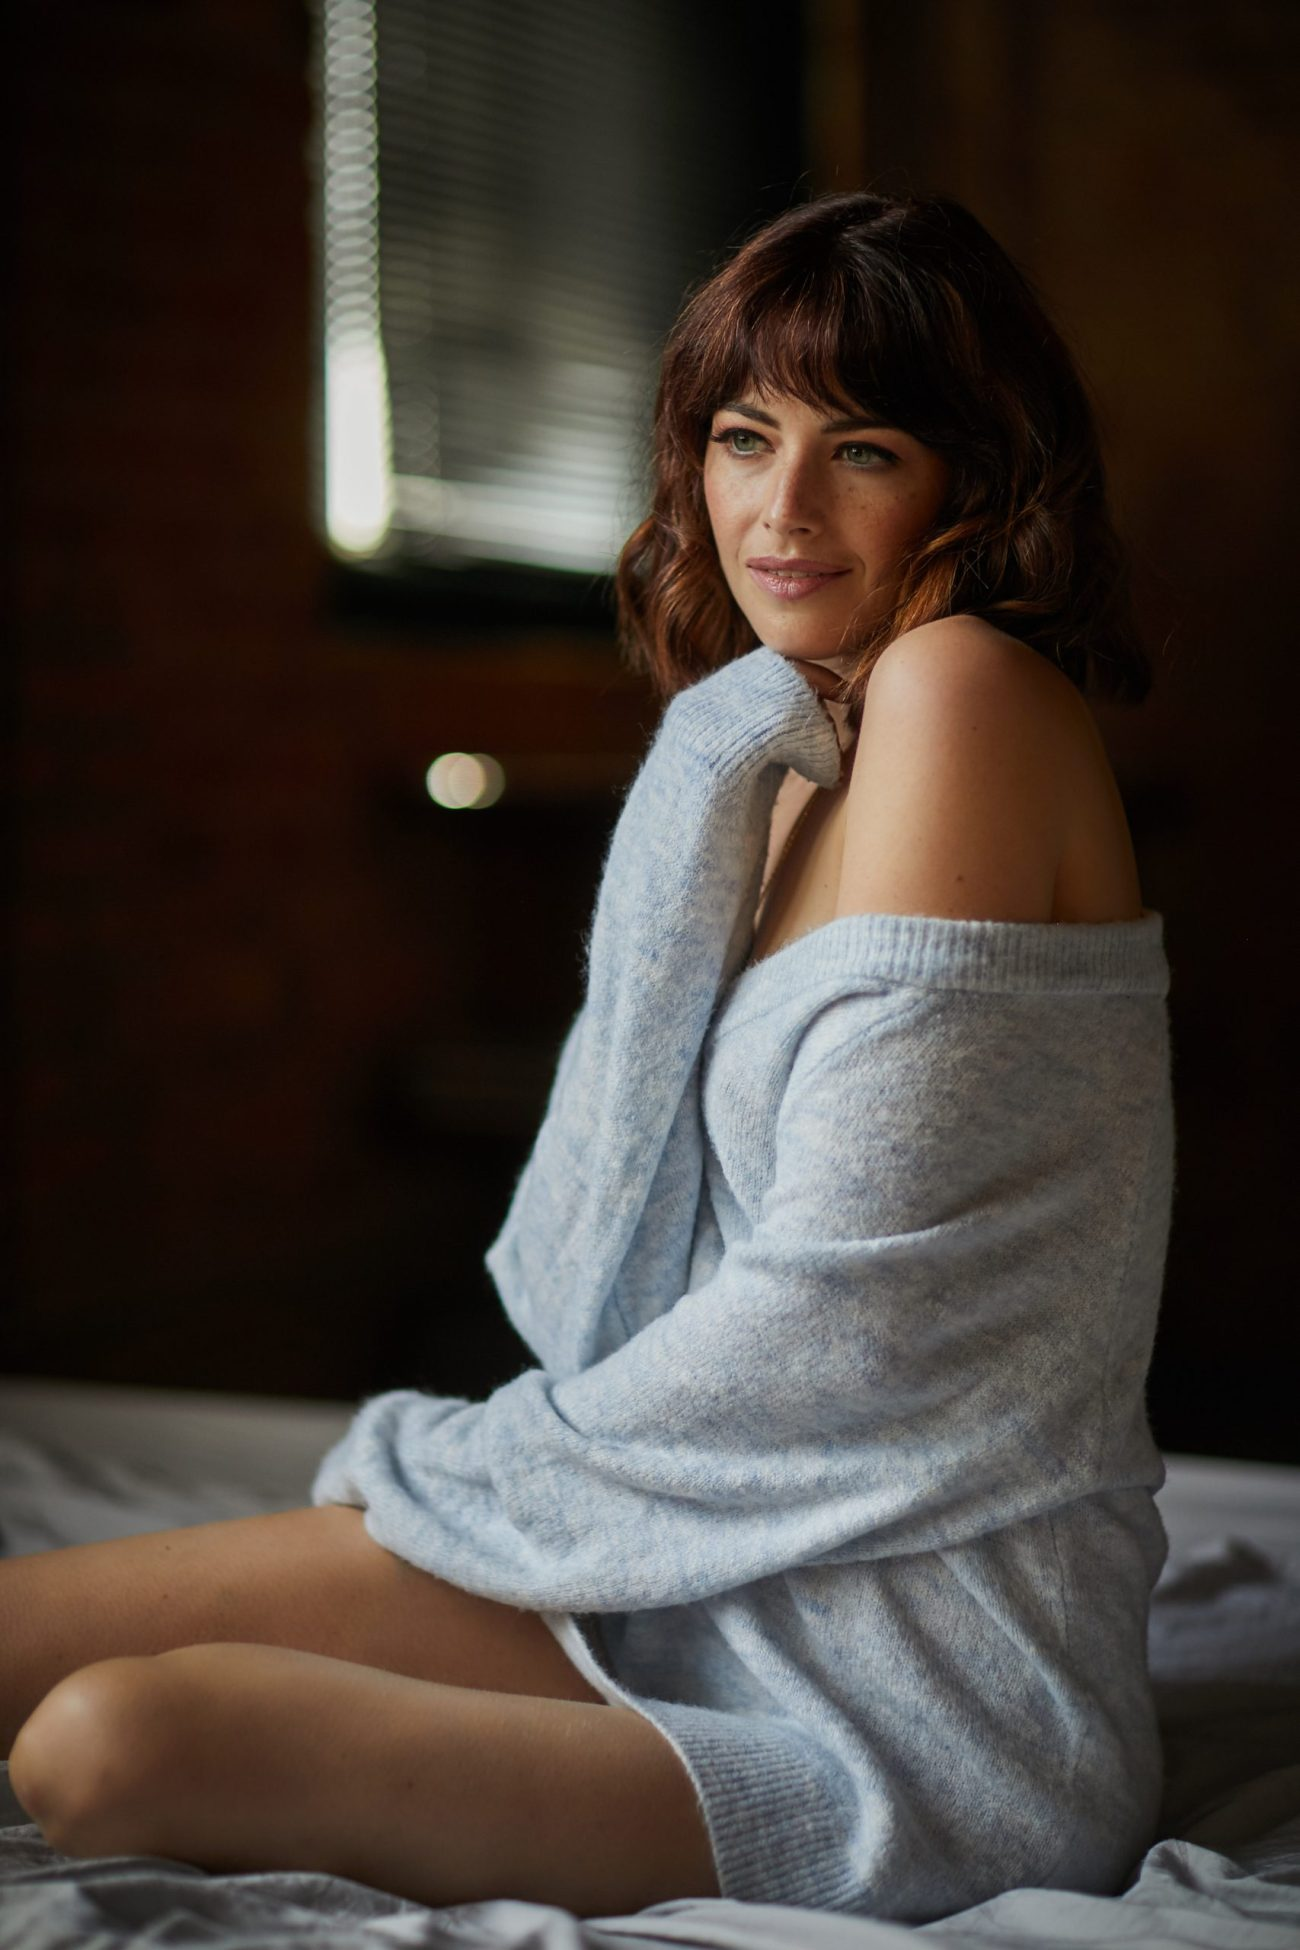 elegant classy winter boudoir photos gift scaled - A Boudoir Session - Is It Worth the Investment?